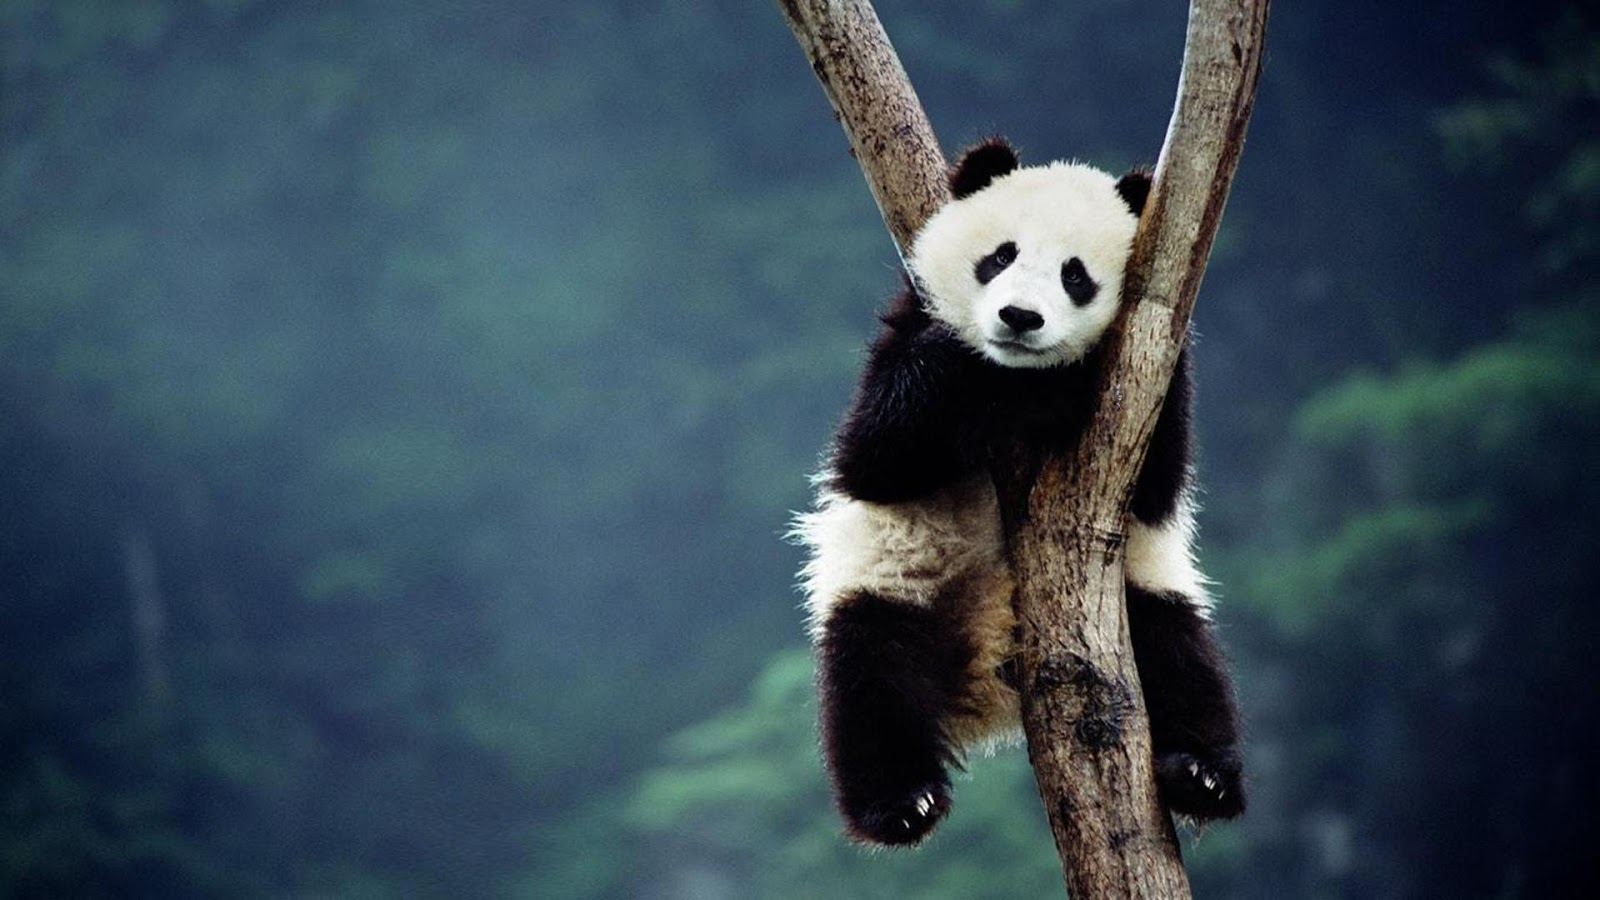 Panda Latest Hd Wallpapers Download Wallpapers Just do It 1600x900